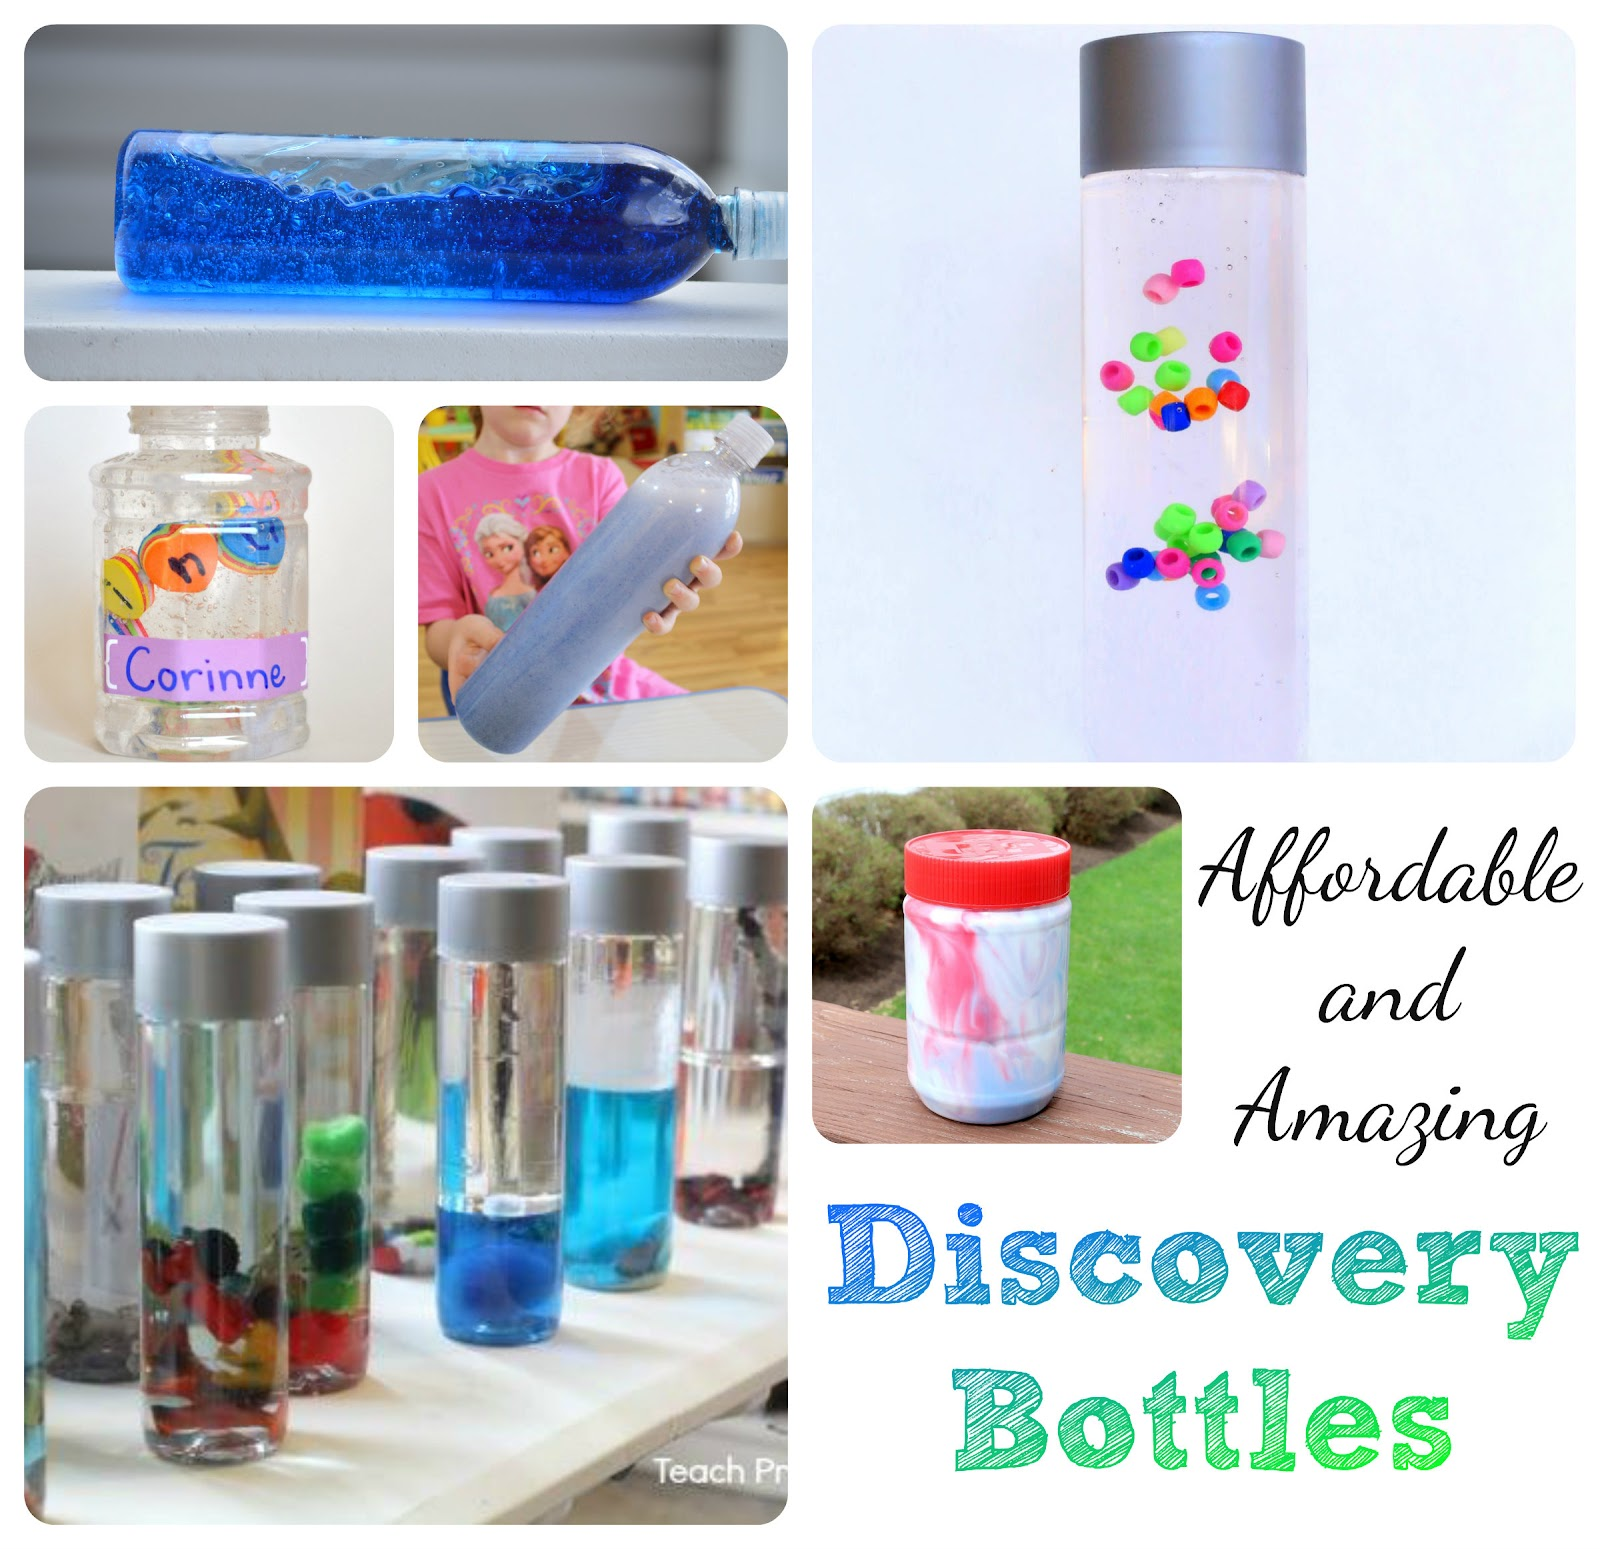 Affordable and Amazing Discovery Bottles.jpg